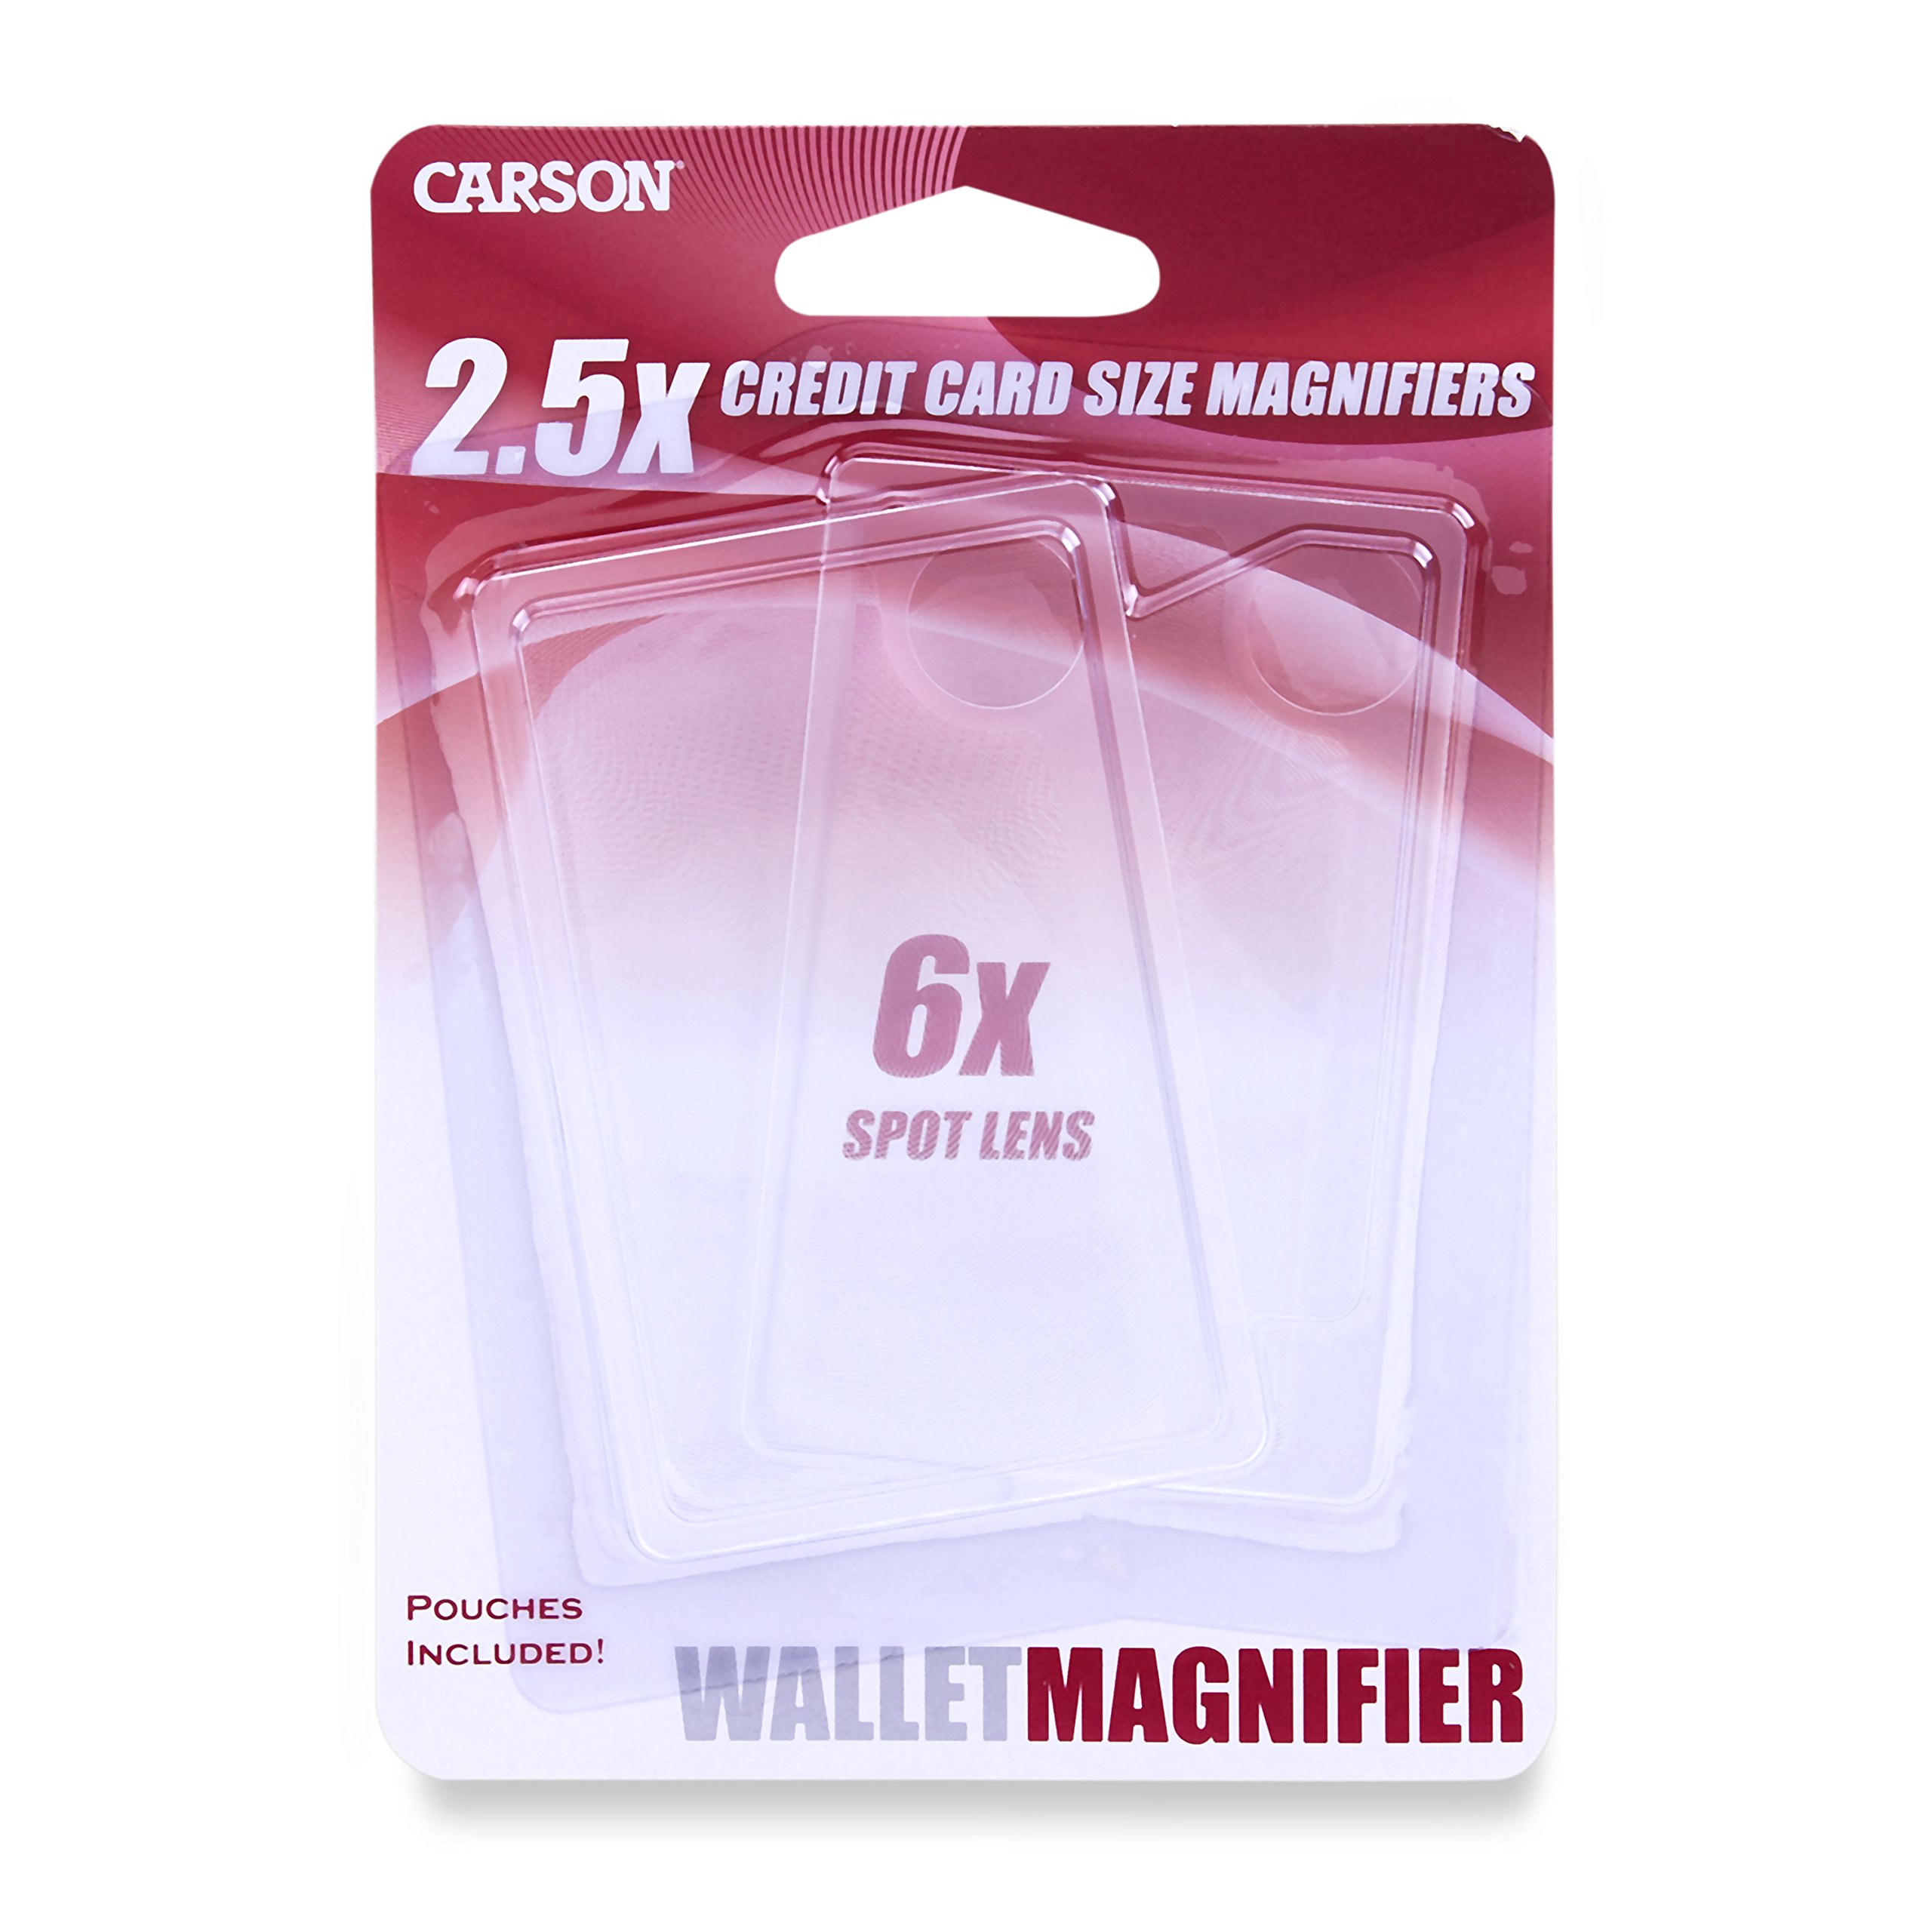 Carson Twin Pack 2.5x Power Credit Card Size Magnifiers with 6x Spot Lens (WM-01)